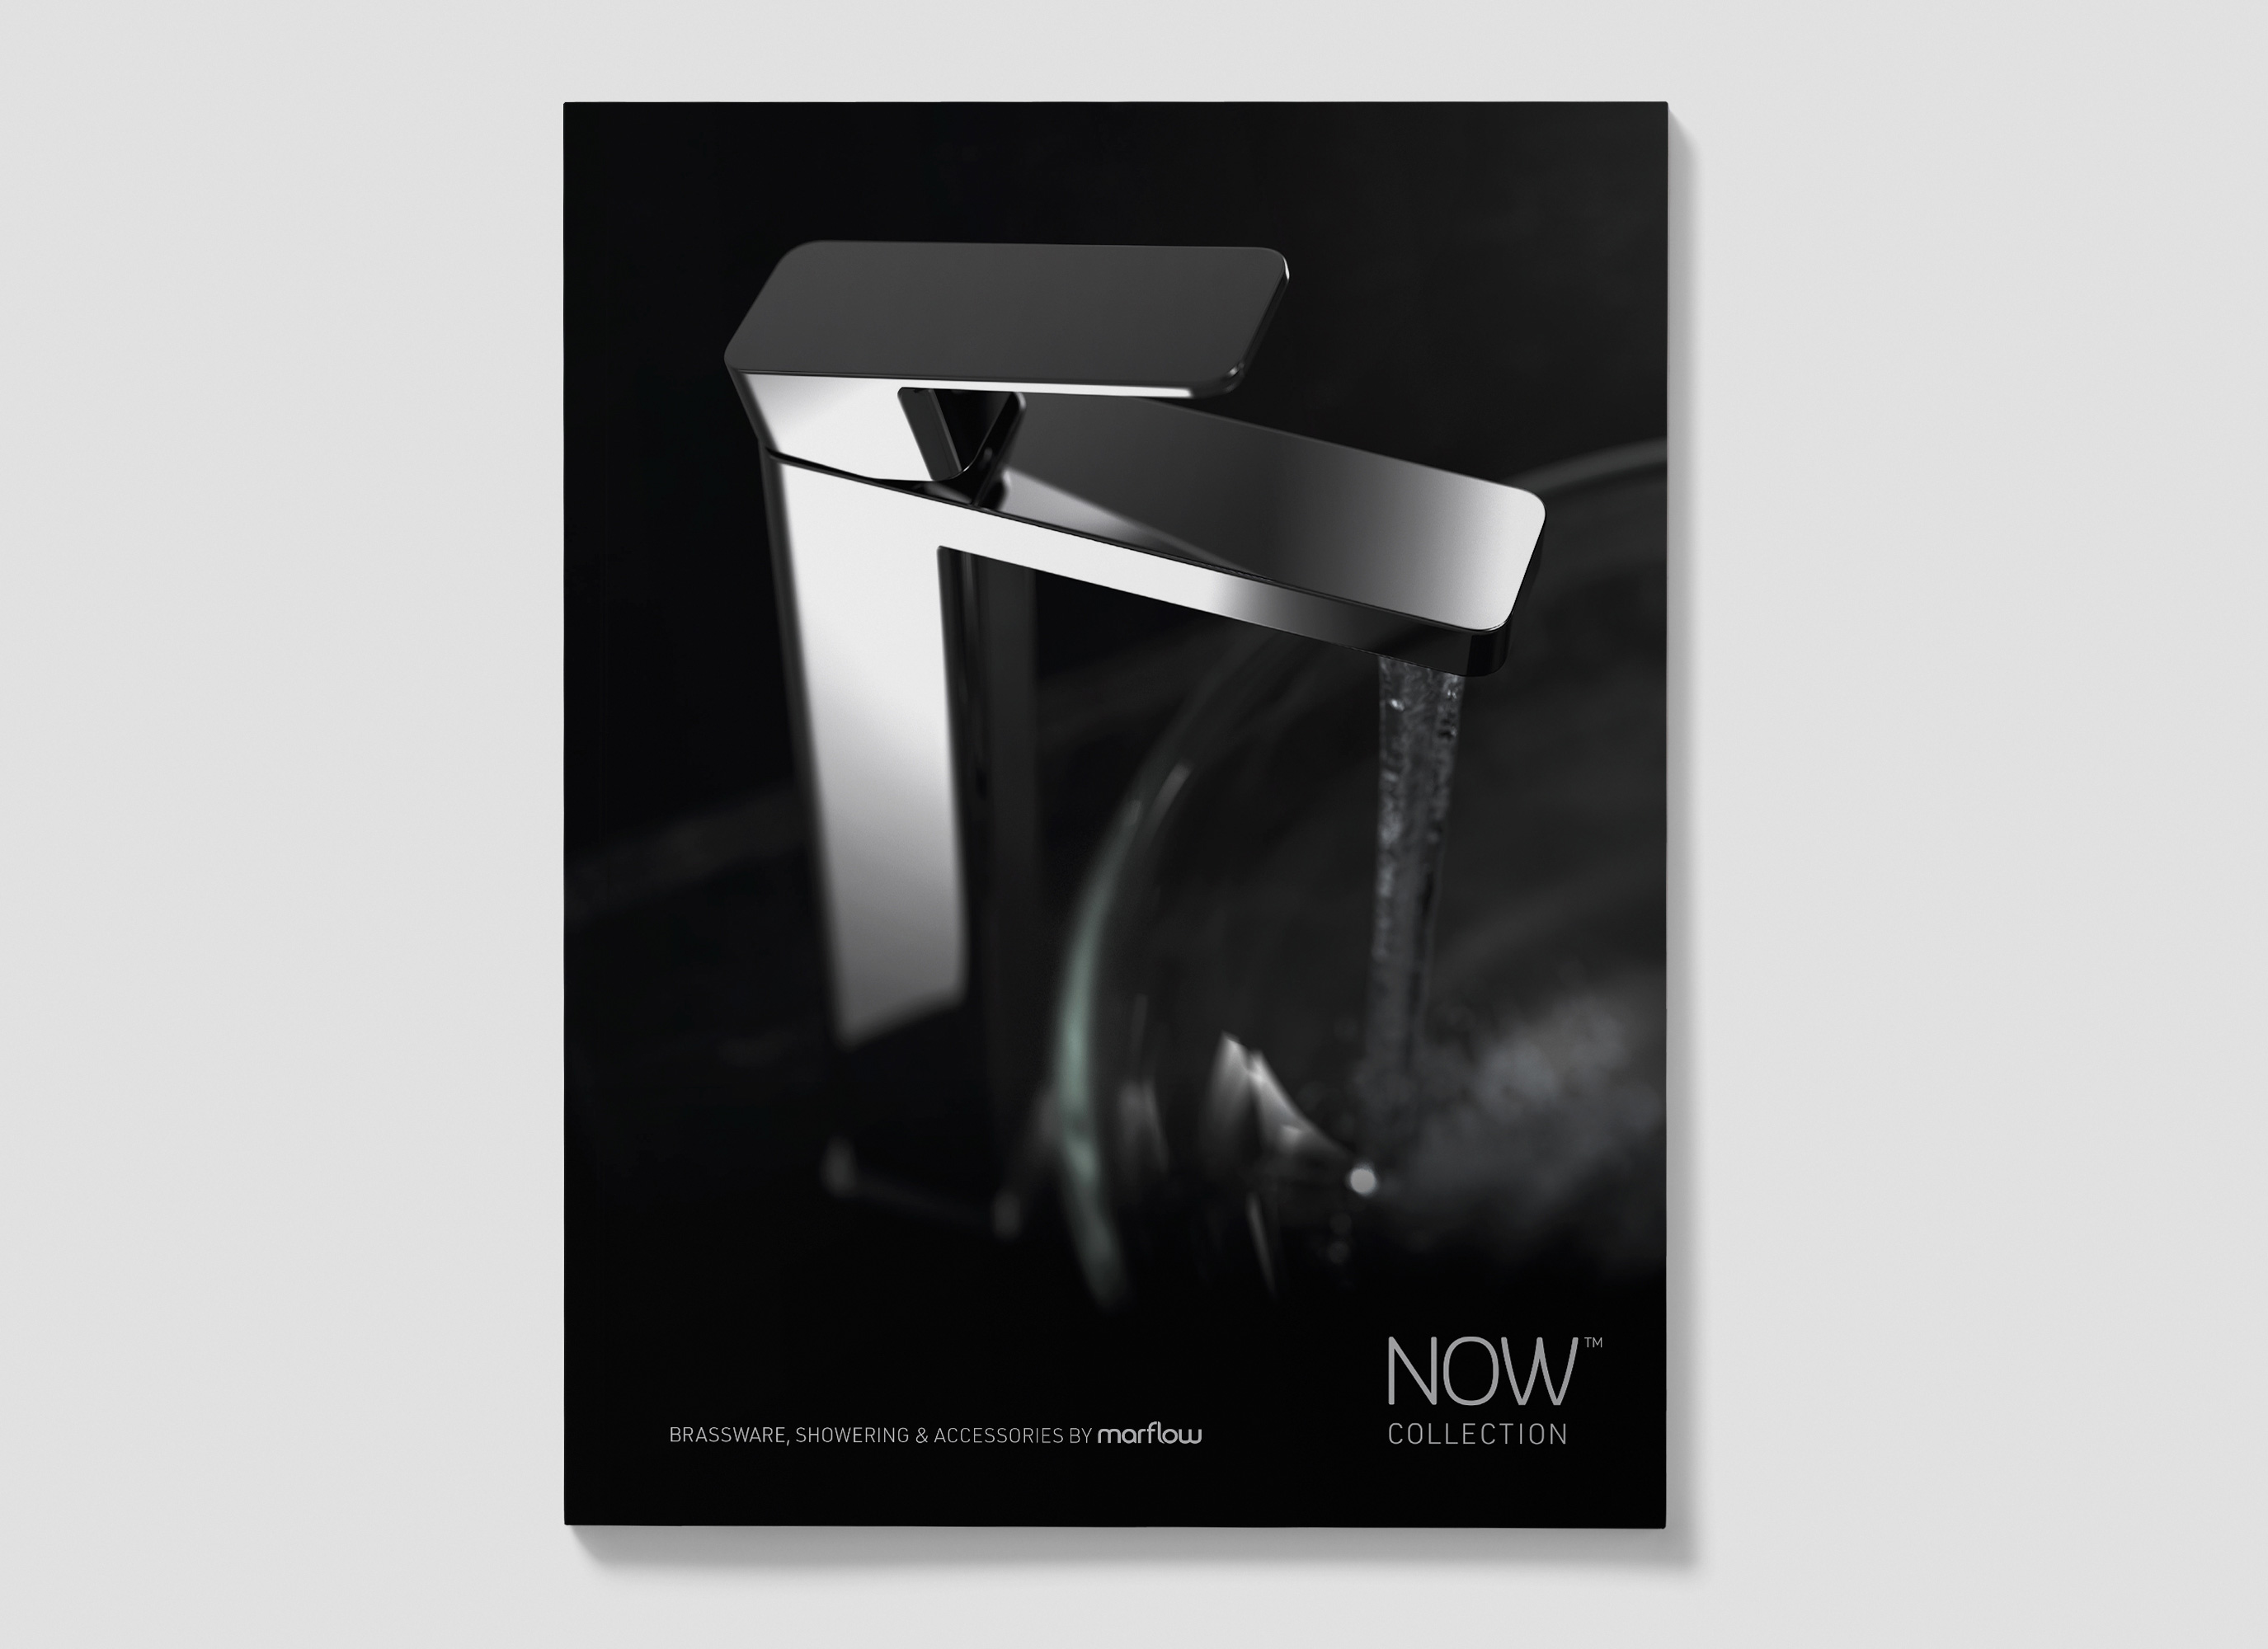 image of front cover of NOW Collection brochure